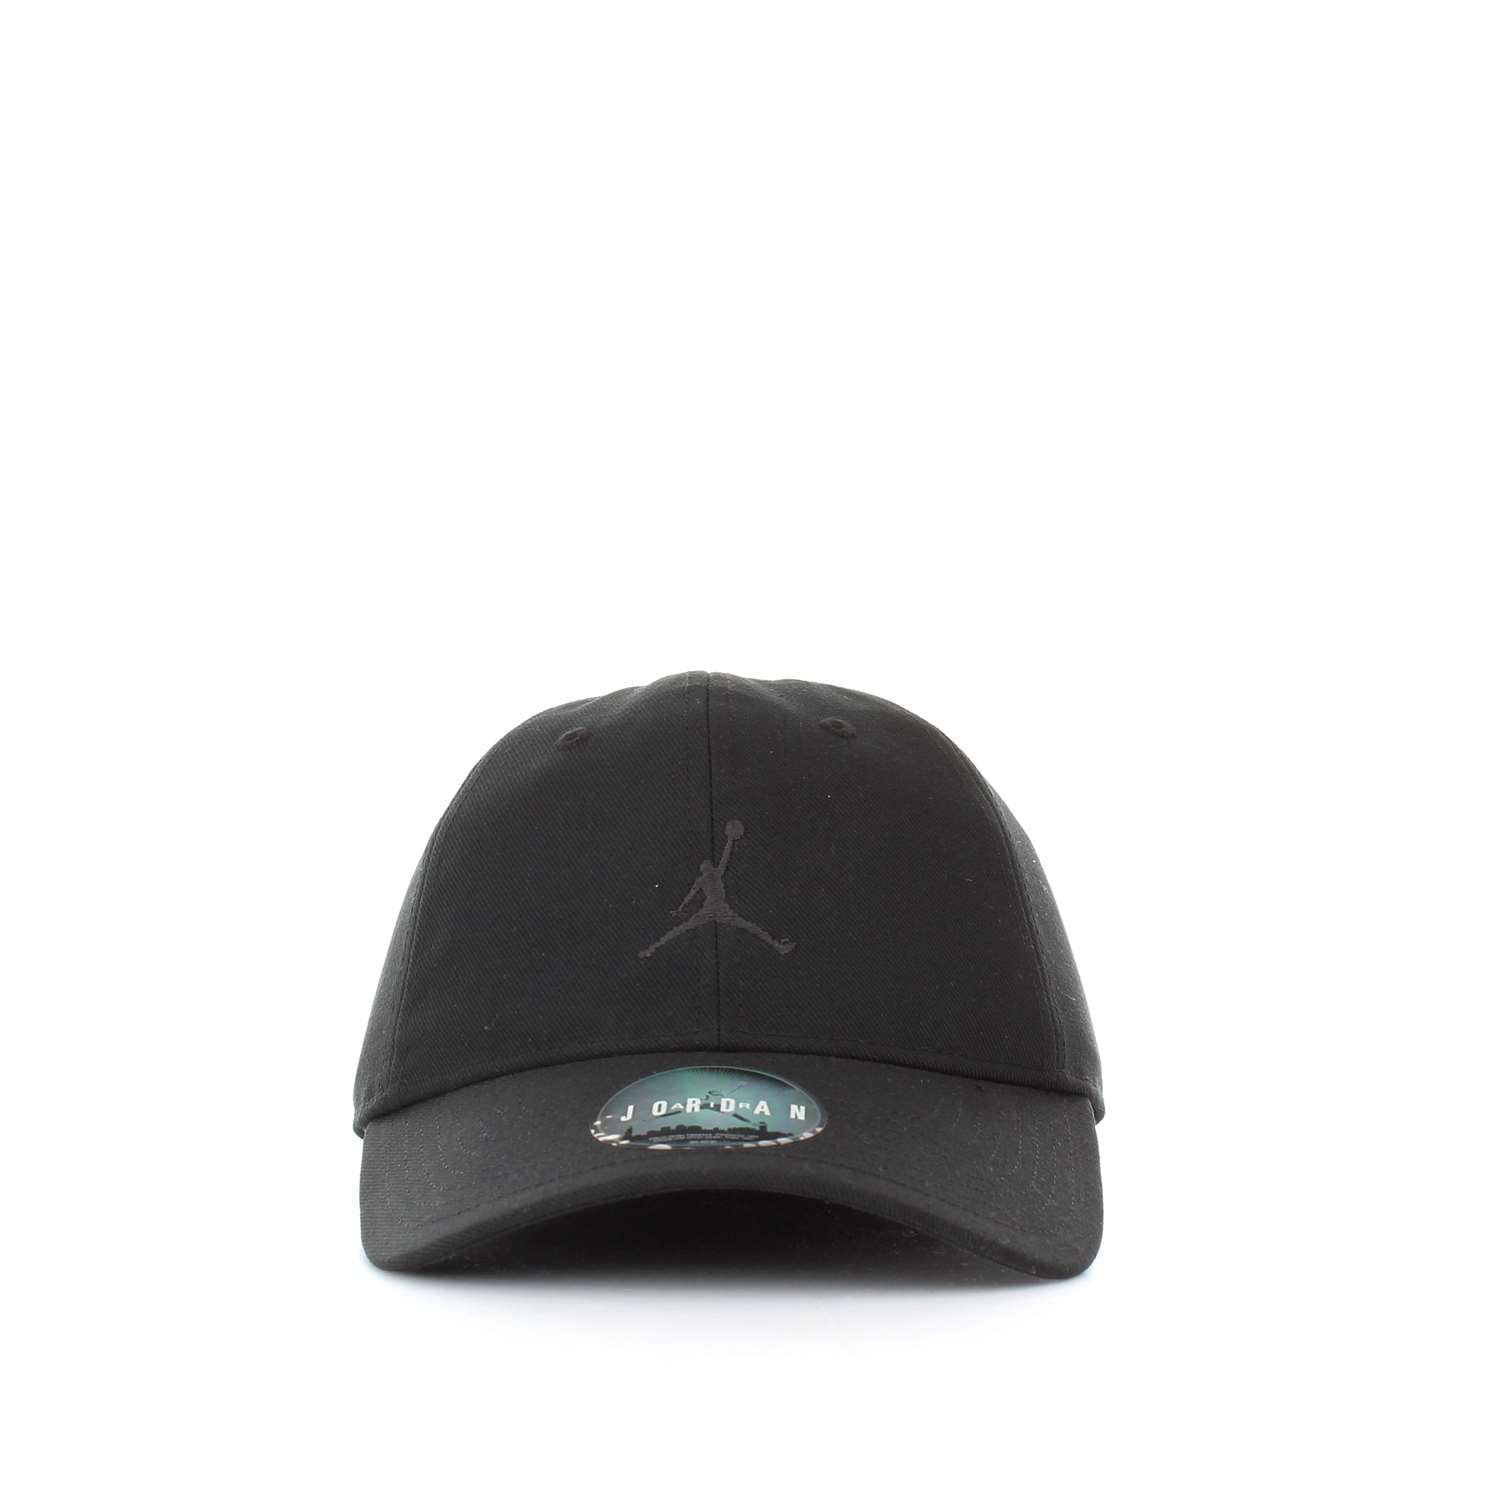 b324f0a898e122 ... norway nike 847143 010 air jordan floppy h 86 adjustable hat black  8880c 29441